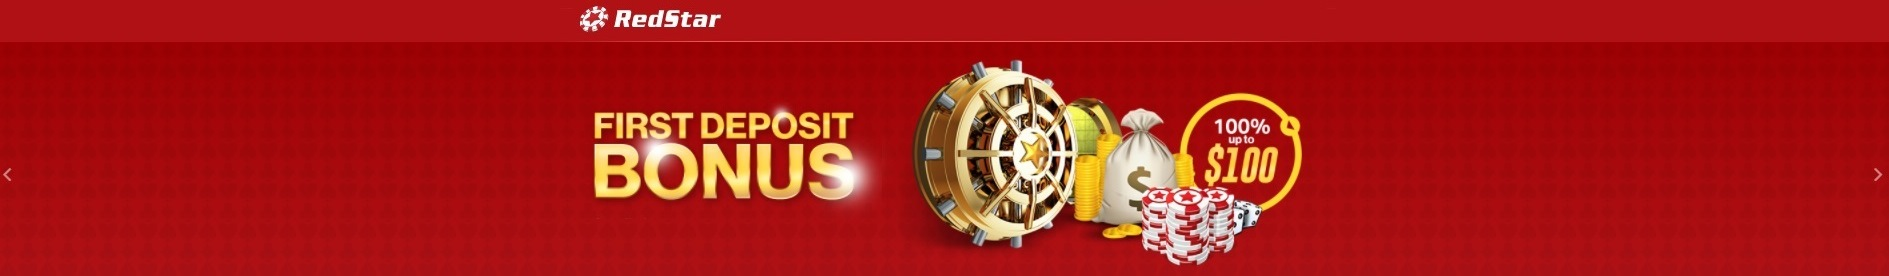 RedStar Casino Poker Sportsbook